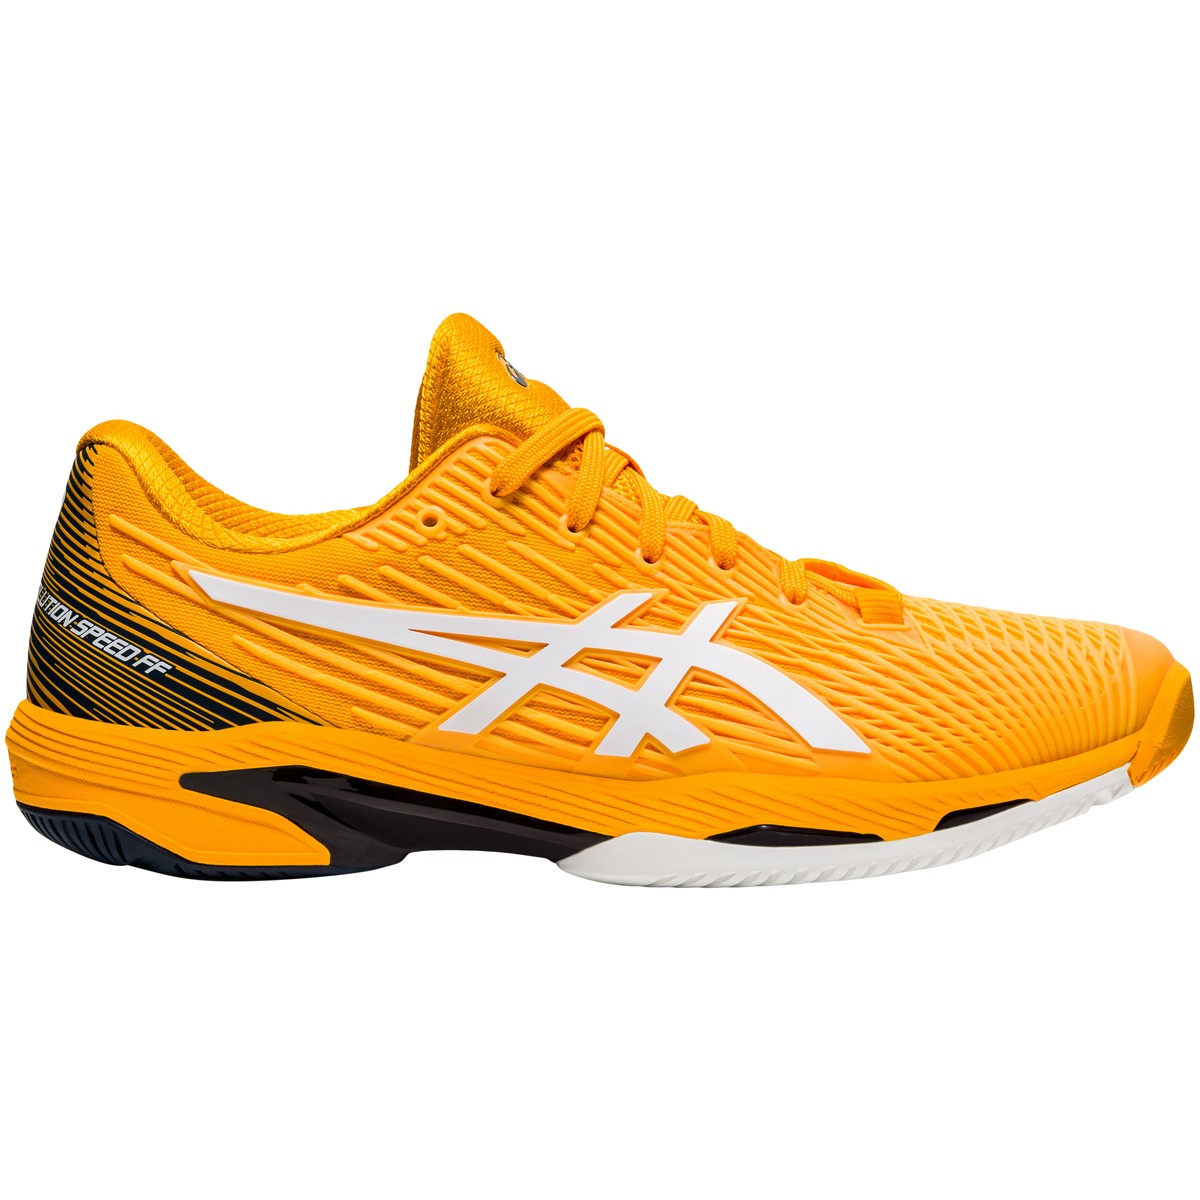 ASICS SOLUTION SPEED FF 2 MELBOURNE ALL COURT SHOES - ASICS ...